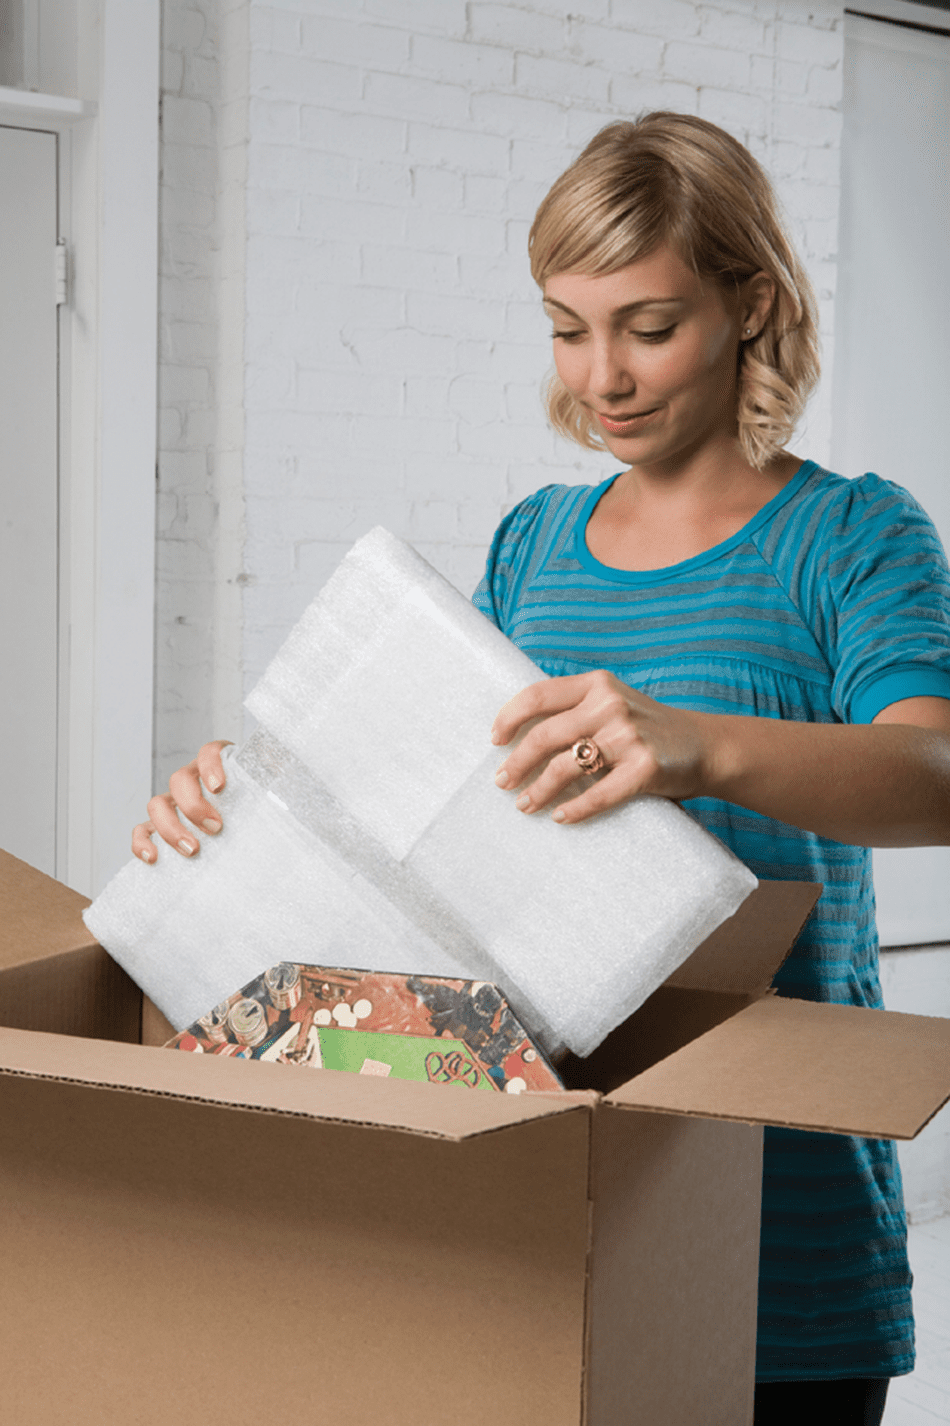 A woman packing a box